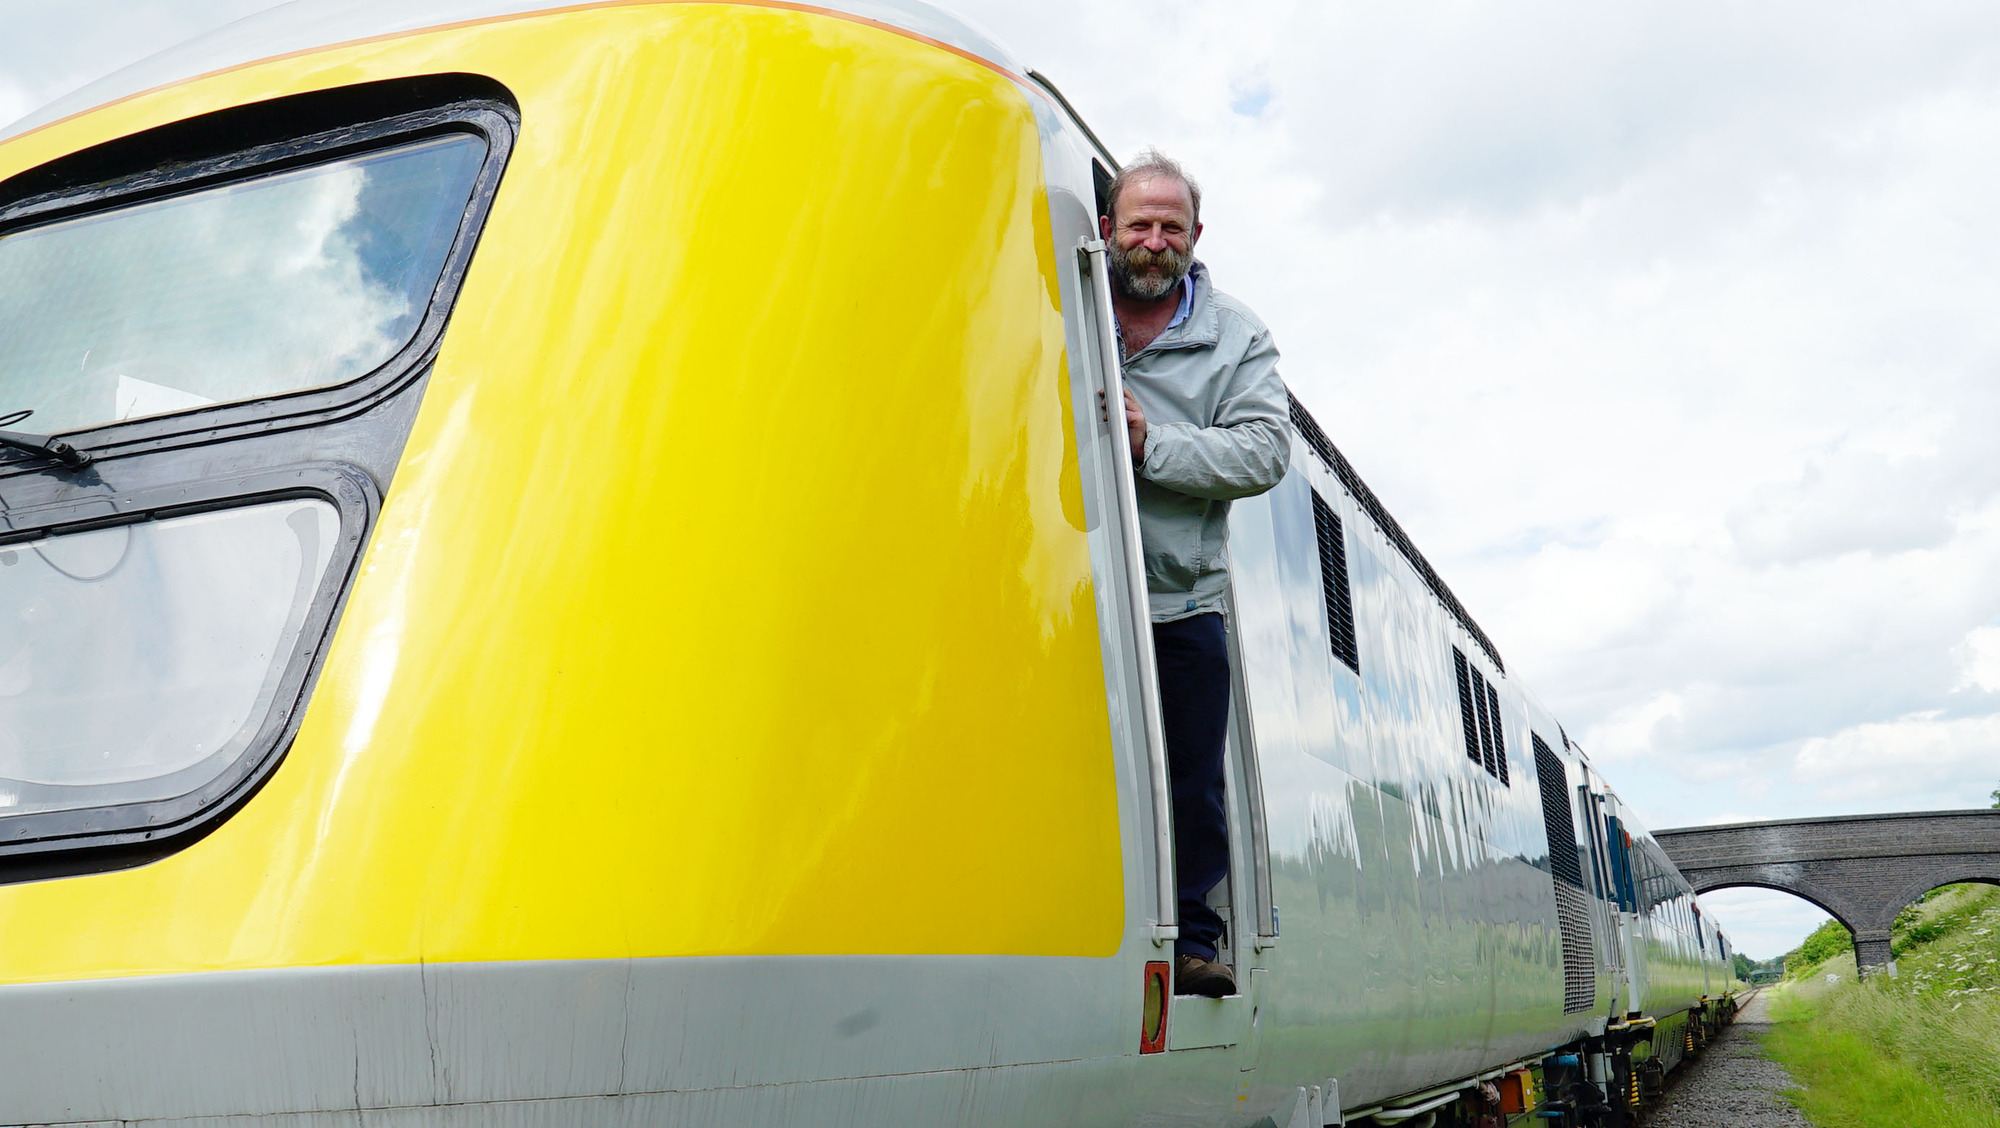 Trainspotting Live!  did nothing to enhance the image of railway enthusiasm. Unless the preservation movement addresses its underlying image problem, it's not going to attract younger volunteers. BBC